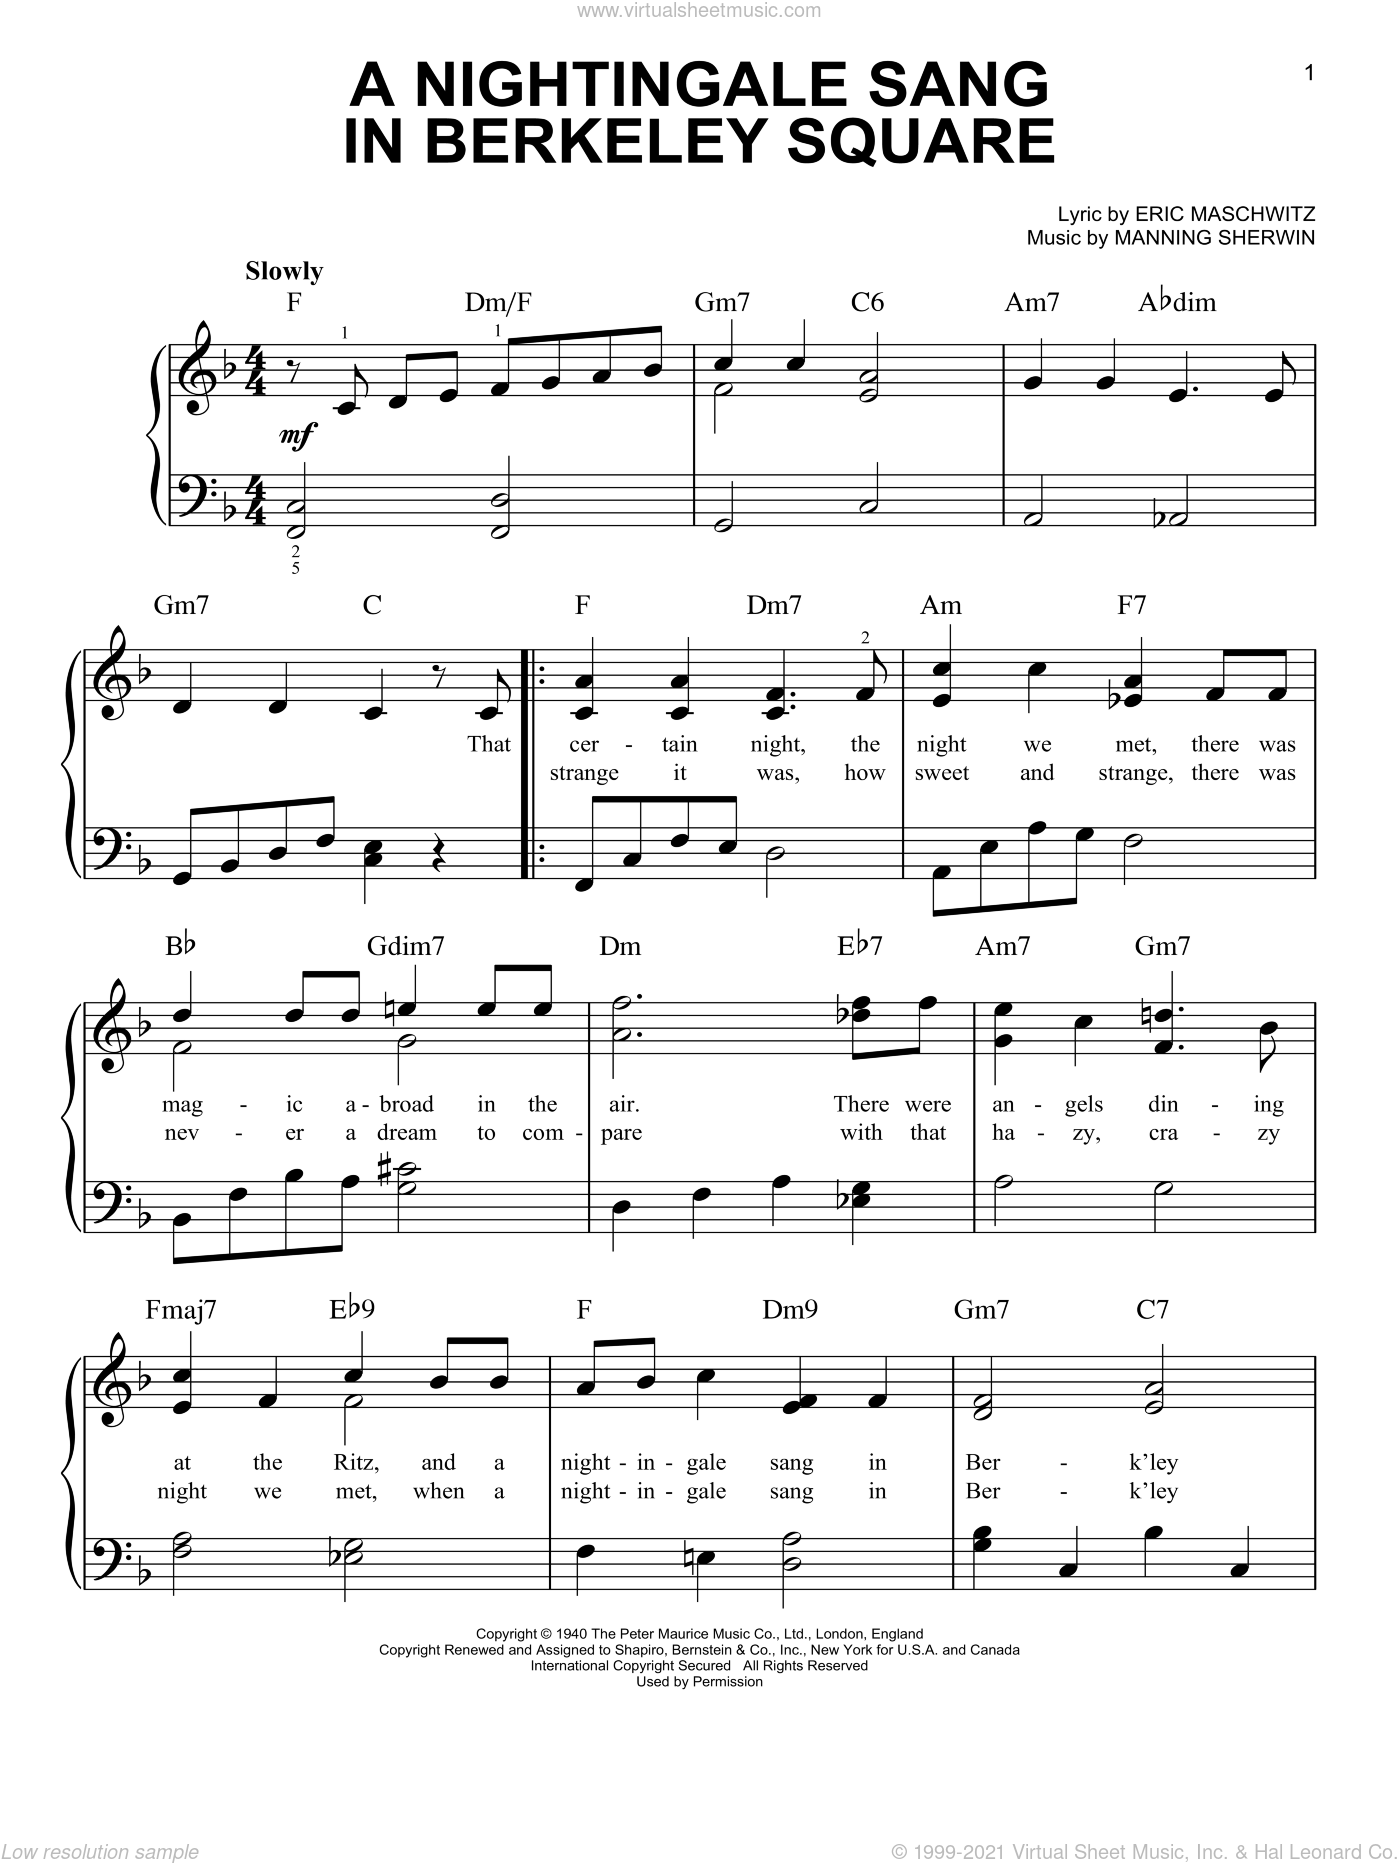 A Nightingale Sang In Berkeley Square sheet music for piano solo by Manhattan Transfer, Eric Maschwitz and Manning Sherwin, easy skill level